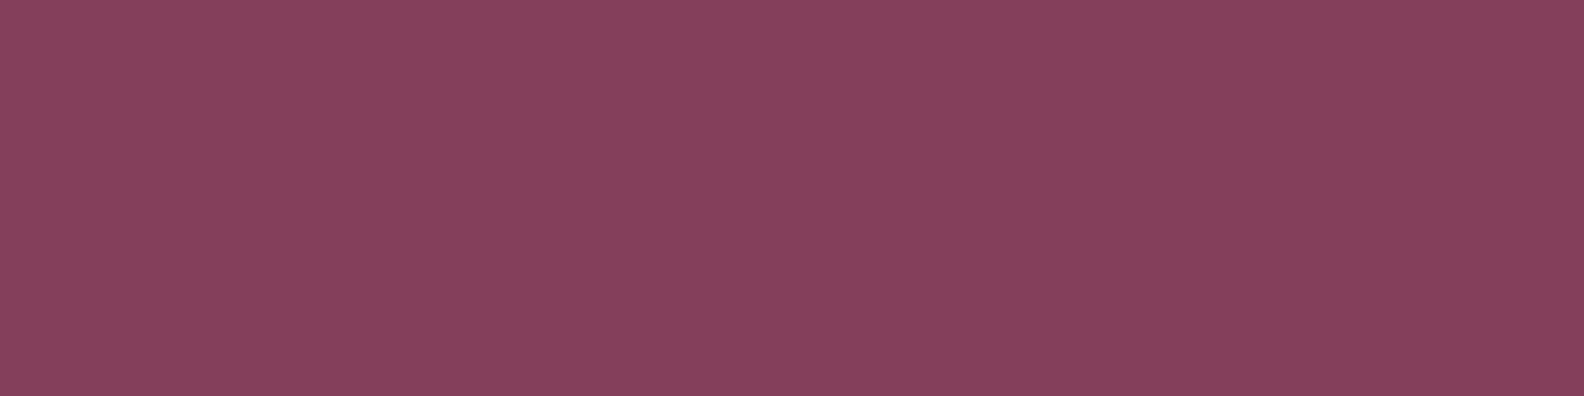 1584x396 Deep Ruby Solid Color Background